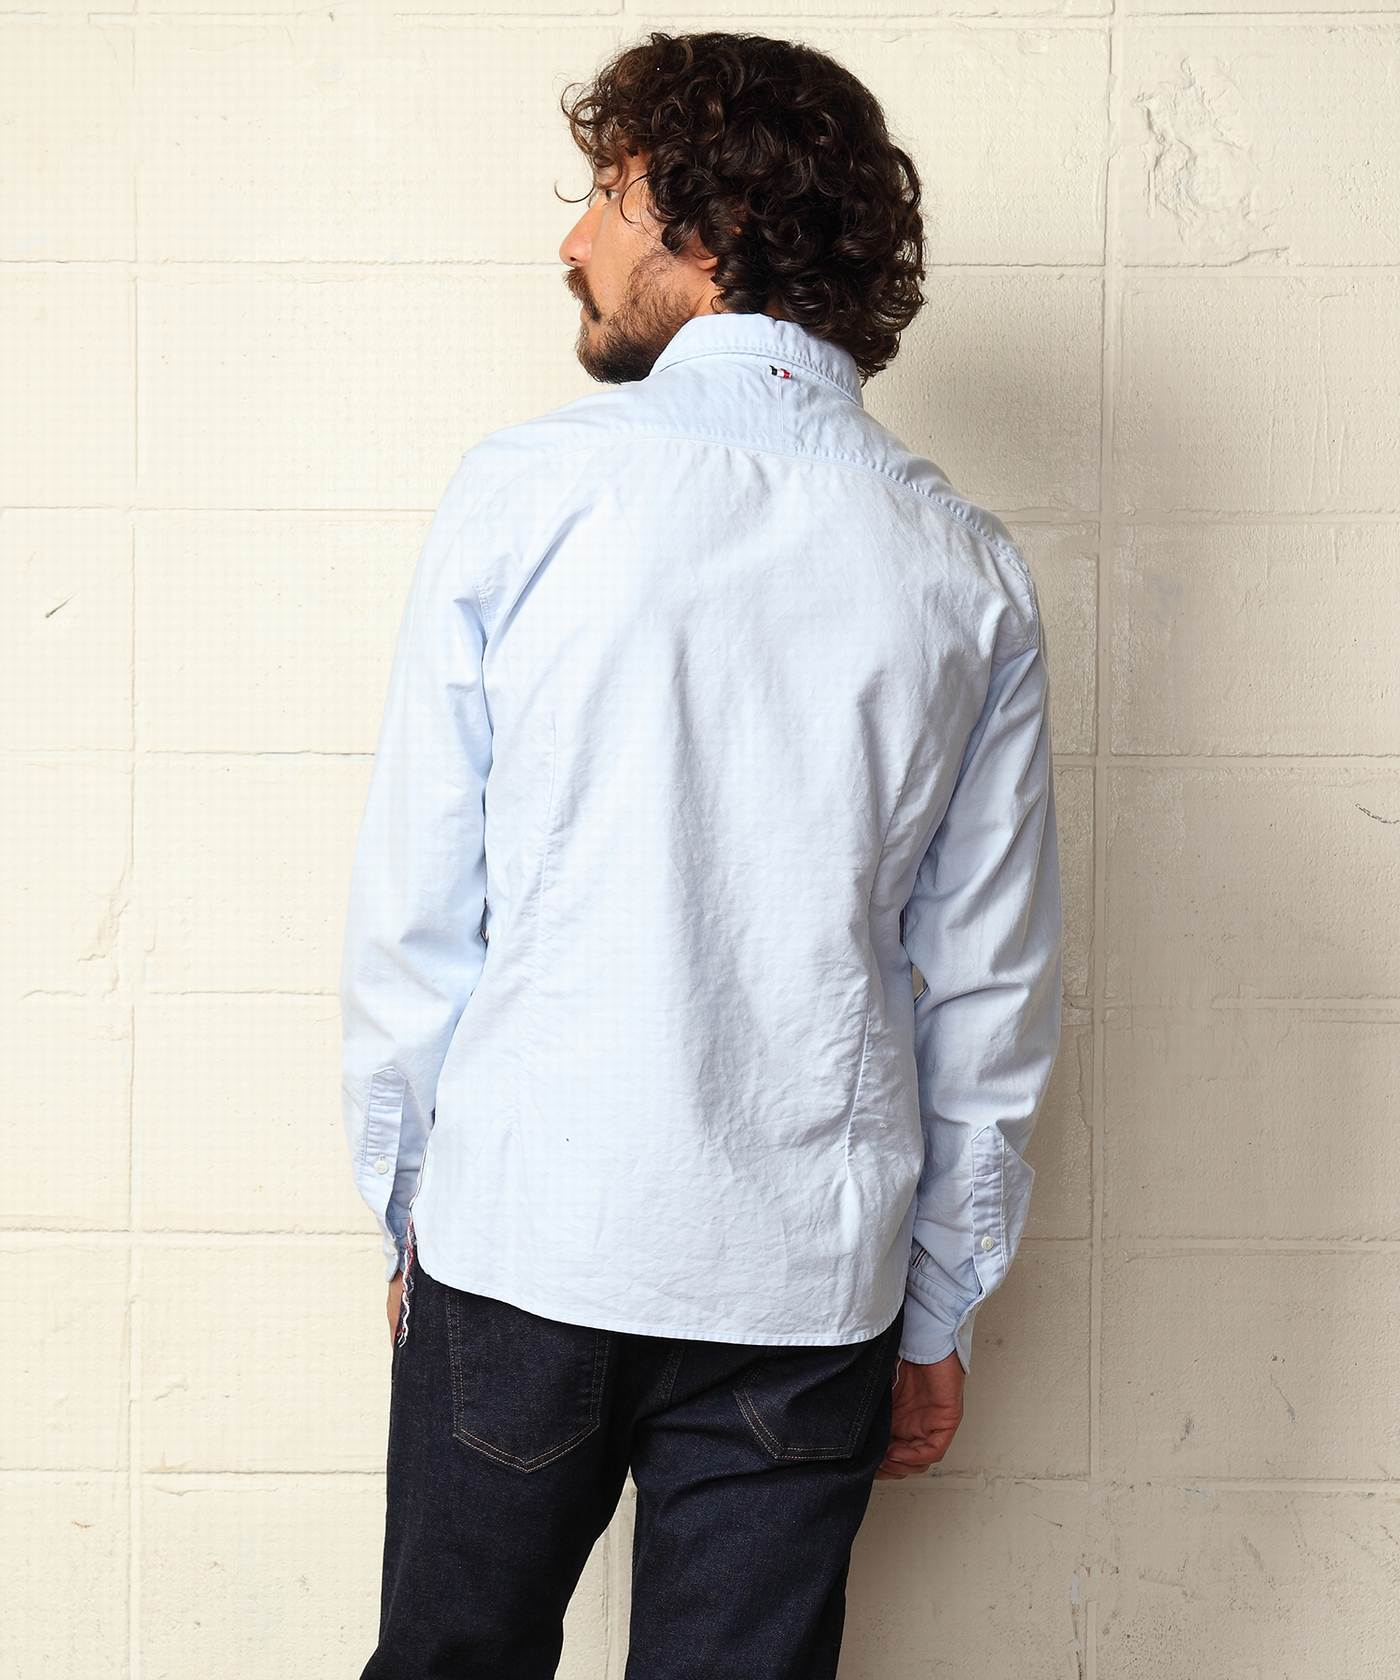 【菅田将暉さん着用】SUPIMA-COTTON OXFORD SHIRTS(TSHS1903)